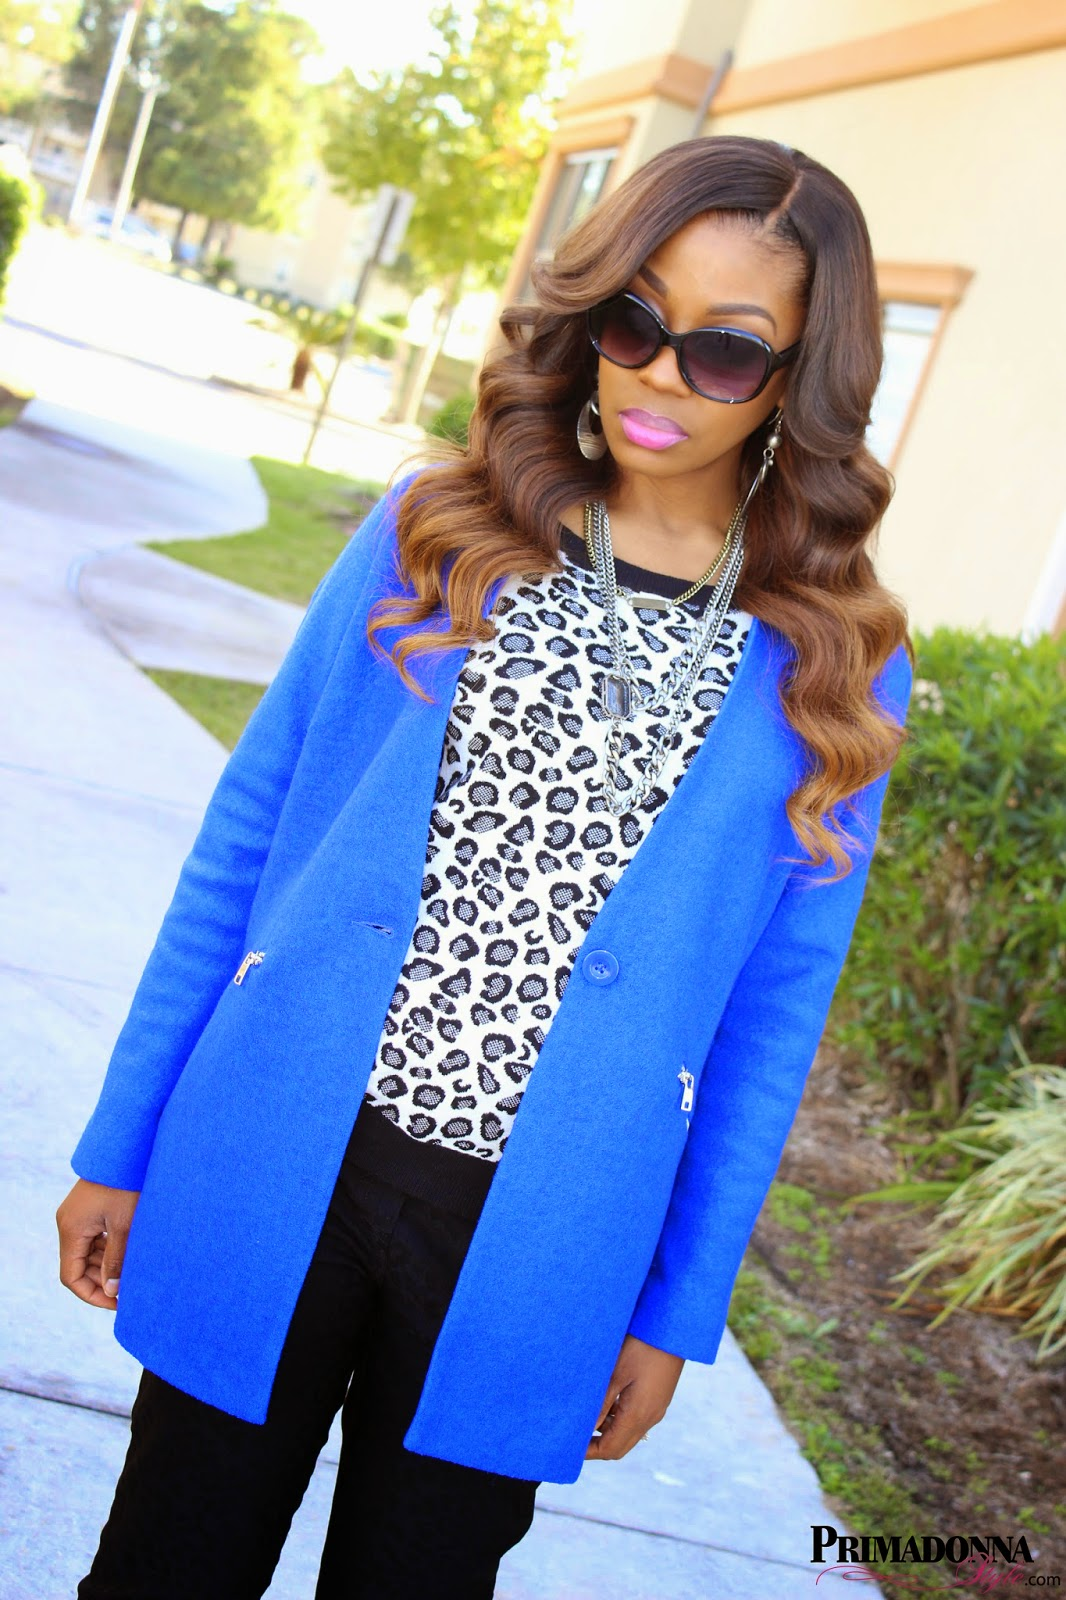 Forever 21 Zippered Collarless Overcoat  a.n.a. Animal Print Sweatshirt  89th & Madison 1978 Cheetah Print Pants Charming Charlie Smoky Edge Multi-Layered Necklace  NYX Round Lip Gloss in Doll Pink  Rock & Republic Heels